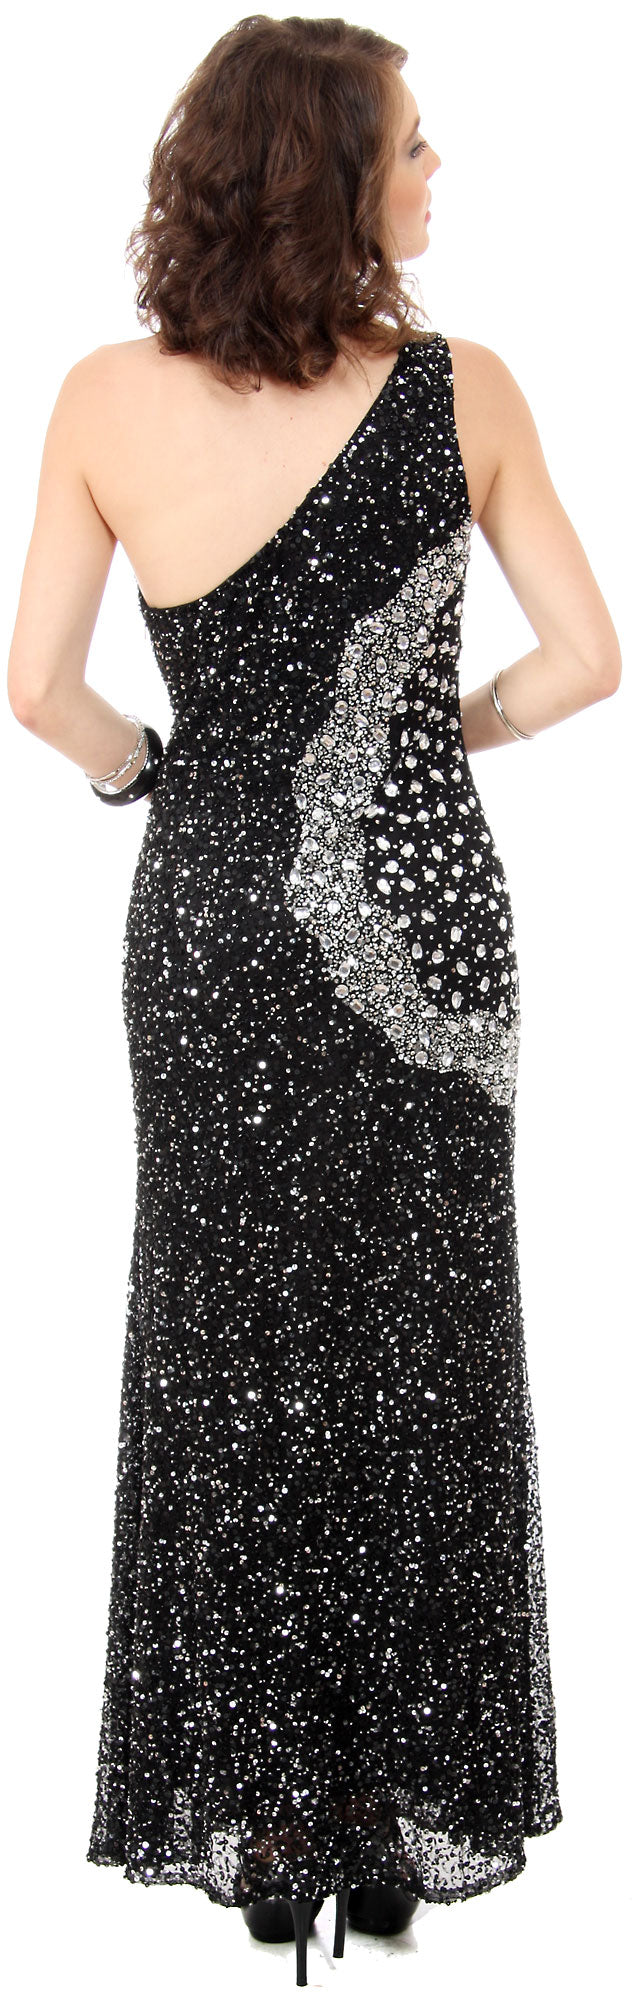 Image of Long Sequined Formal Prom Dress With Rhinestones Waist back in Black/Silver